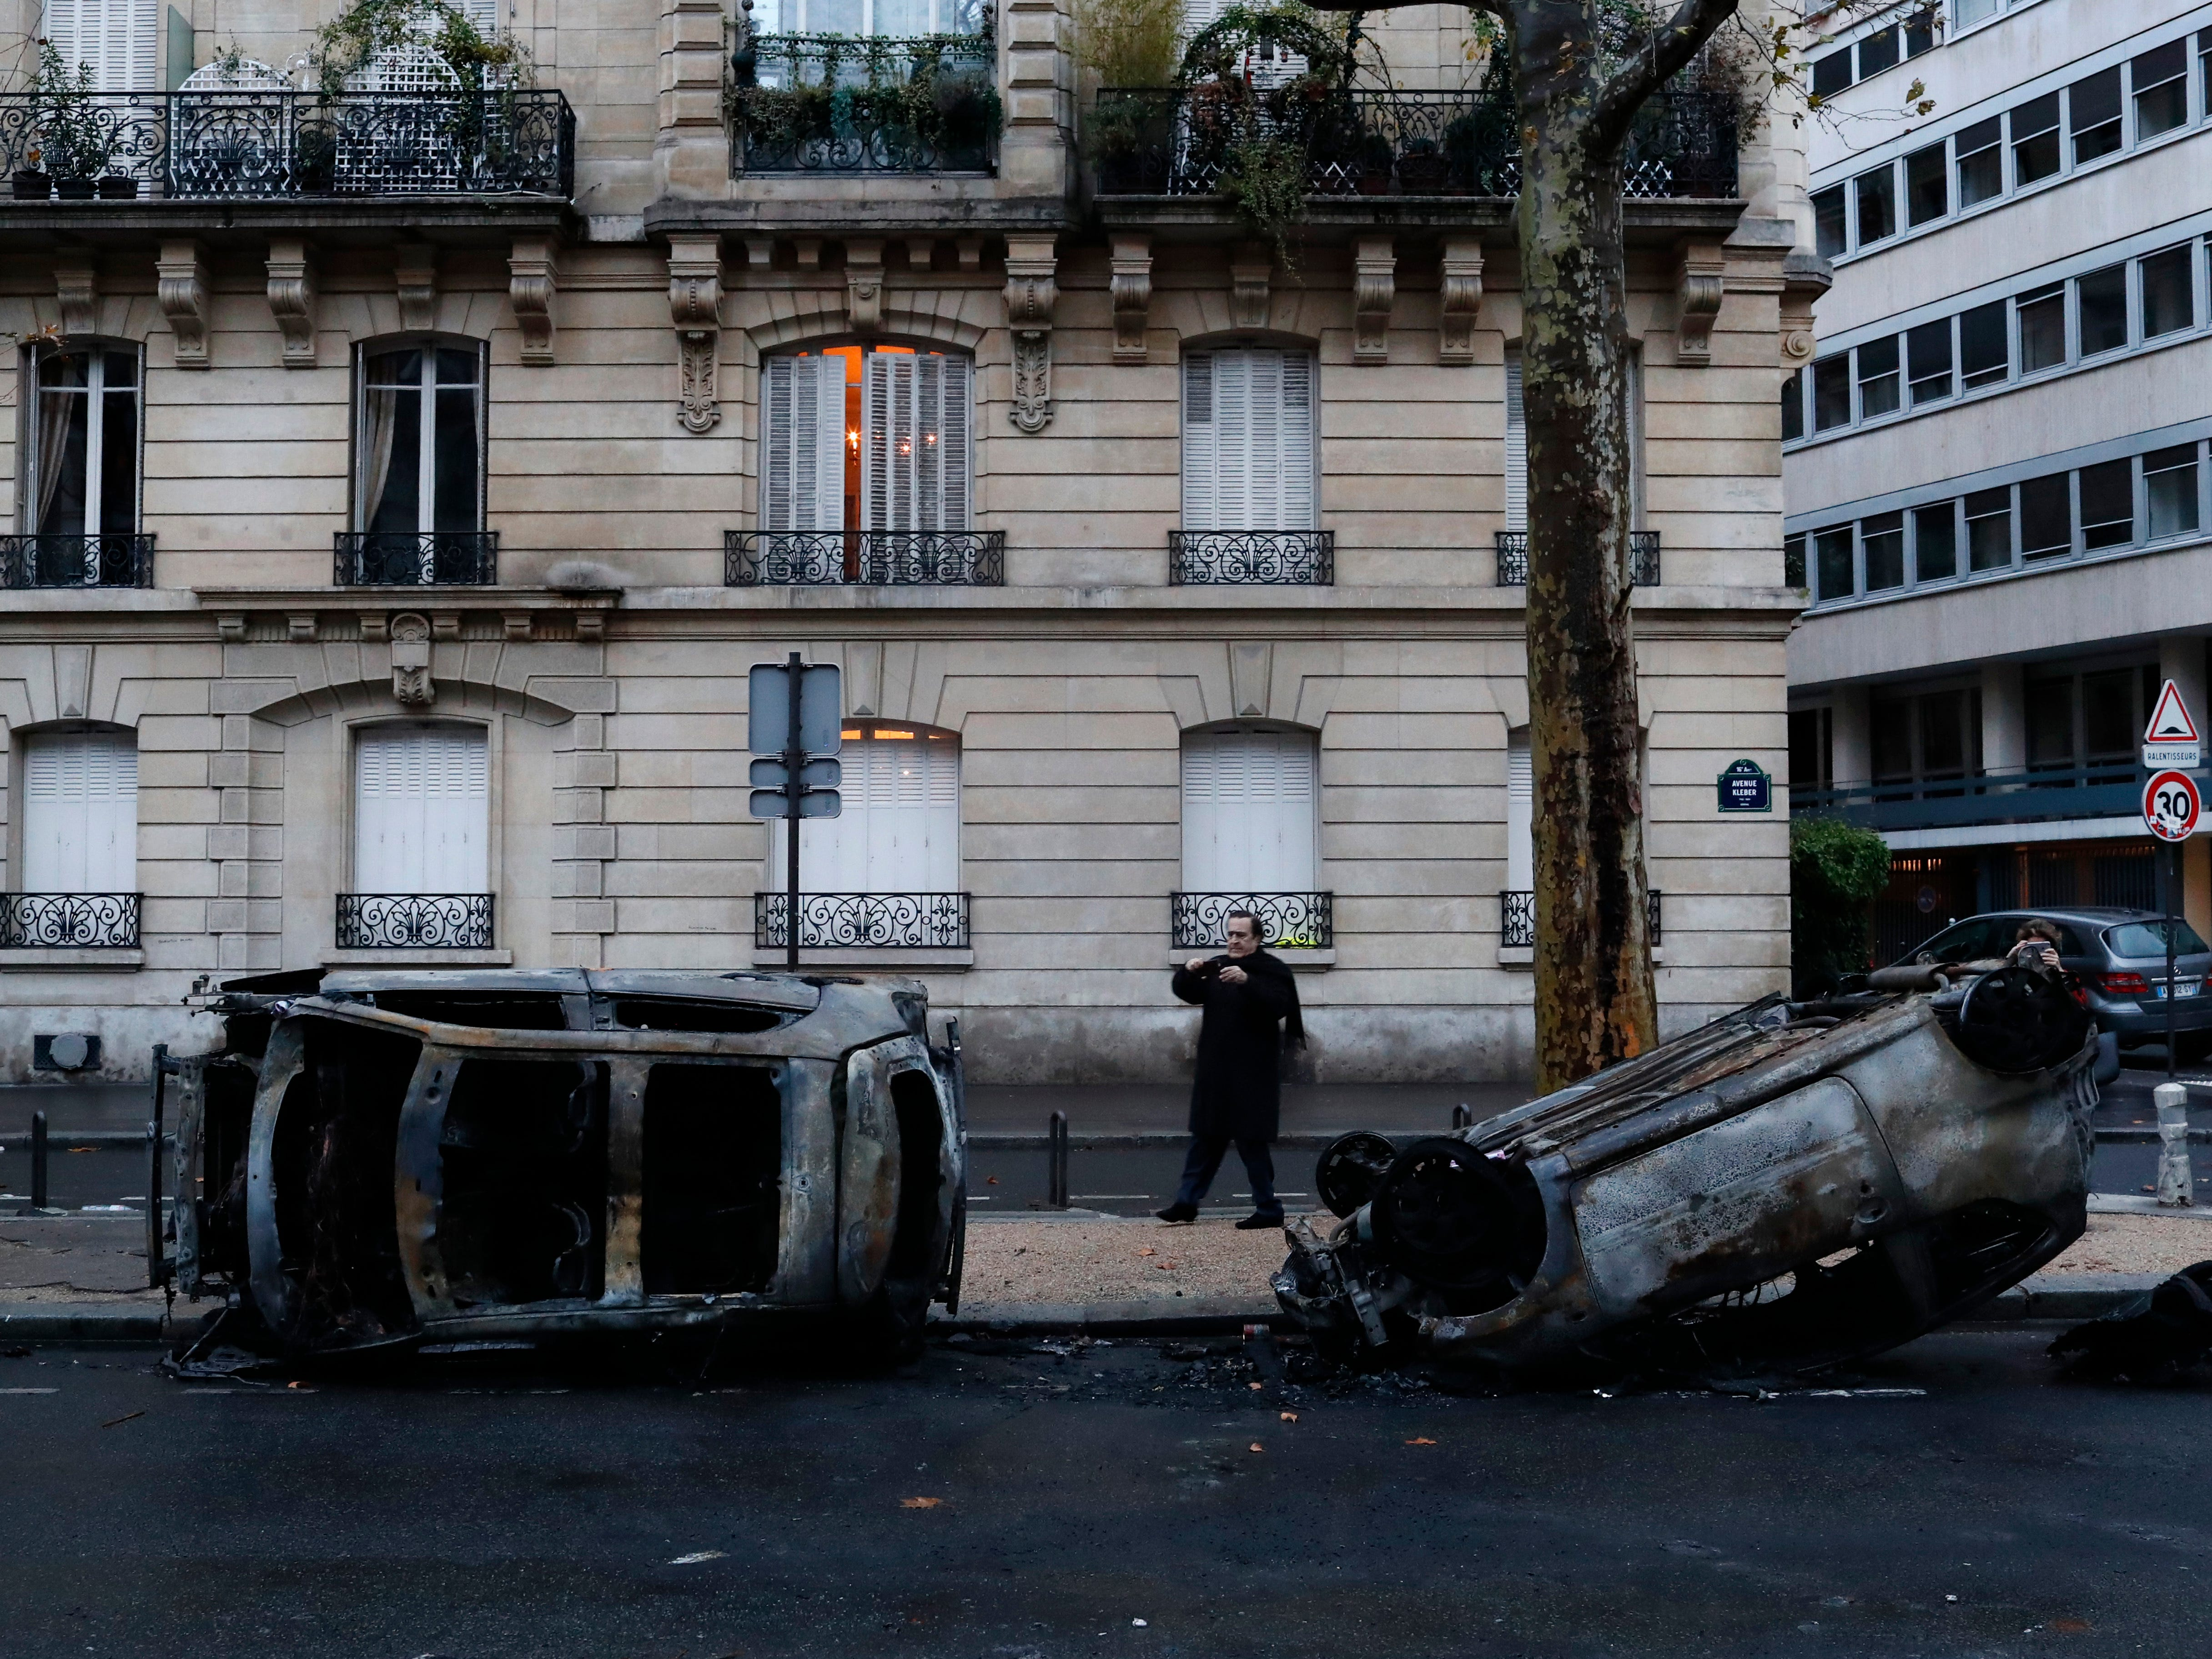 A man takes a snapshot of charred cars the day after a demonstration, near the Arc de Triomphe, in Paris, Sunday, Dec. 2, 2018. A protest against rising taxes and the high cost of living turned into a riot in the French capital, as activists torched cars, smashed windows, looted stores and tagged the Arc de Triomphe with multi-colored graffiti.